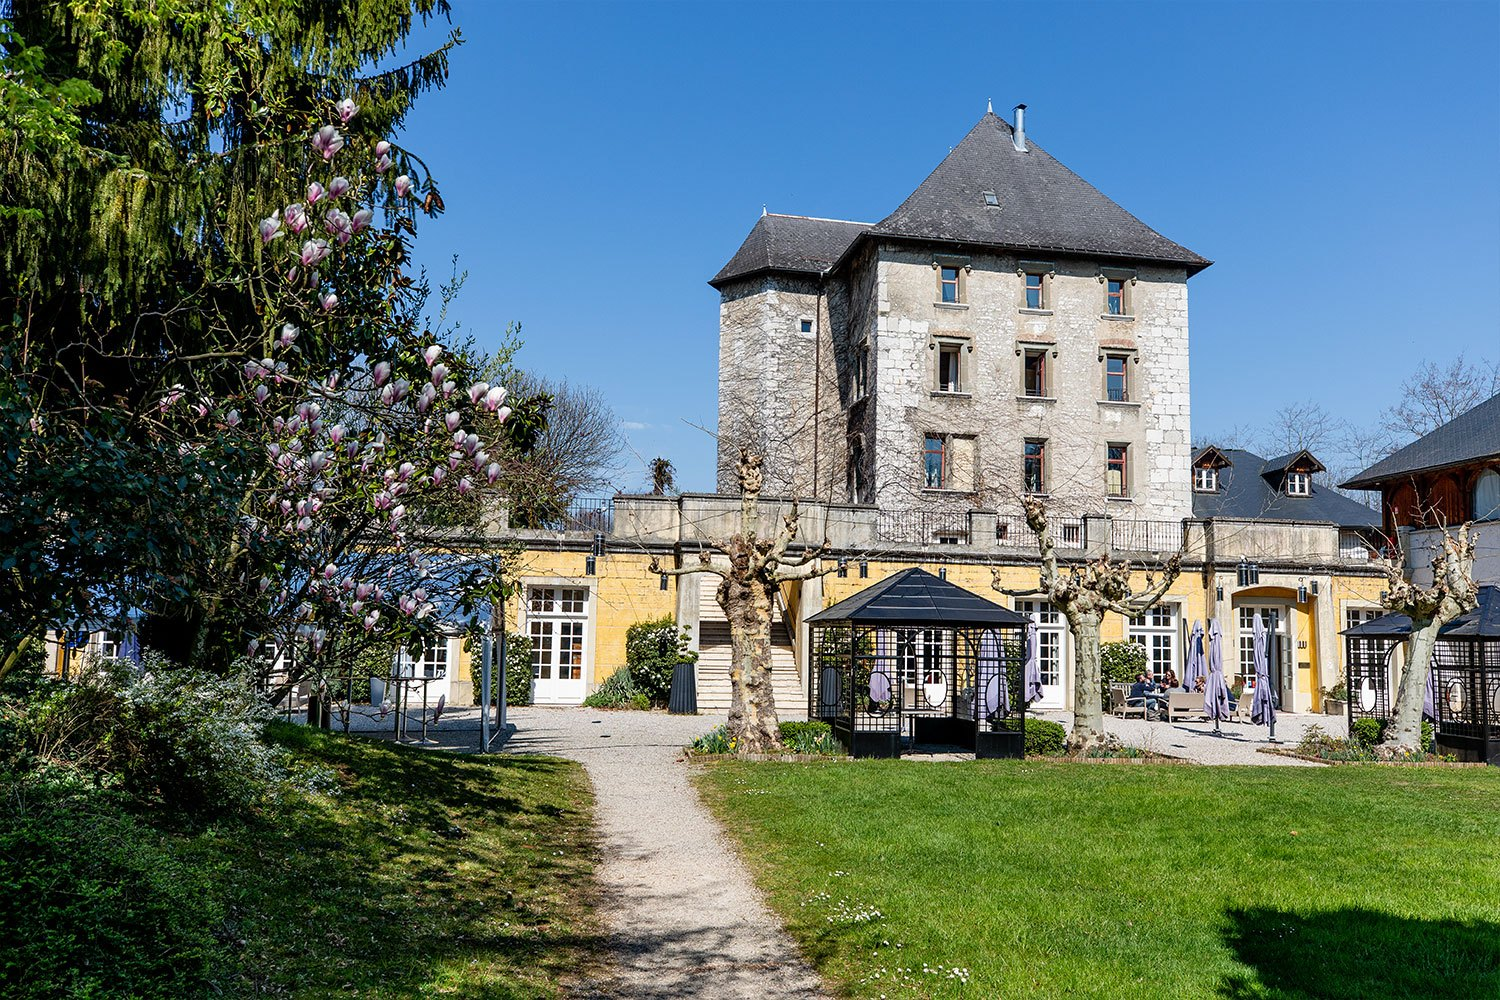 Ouverture_Cantine_Restaurant_Chateau_Candie